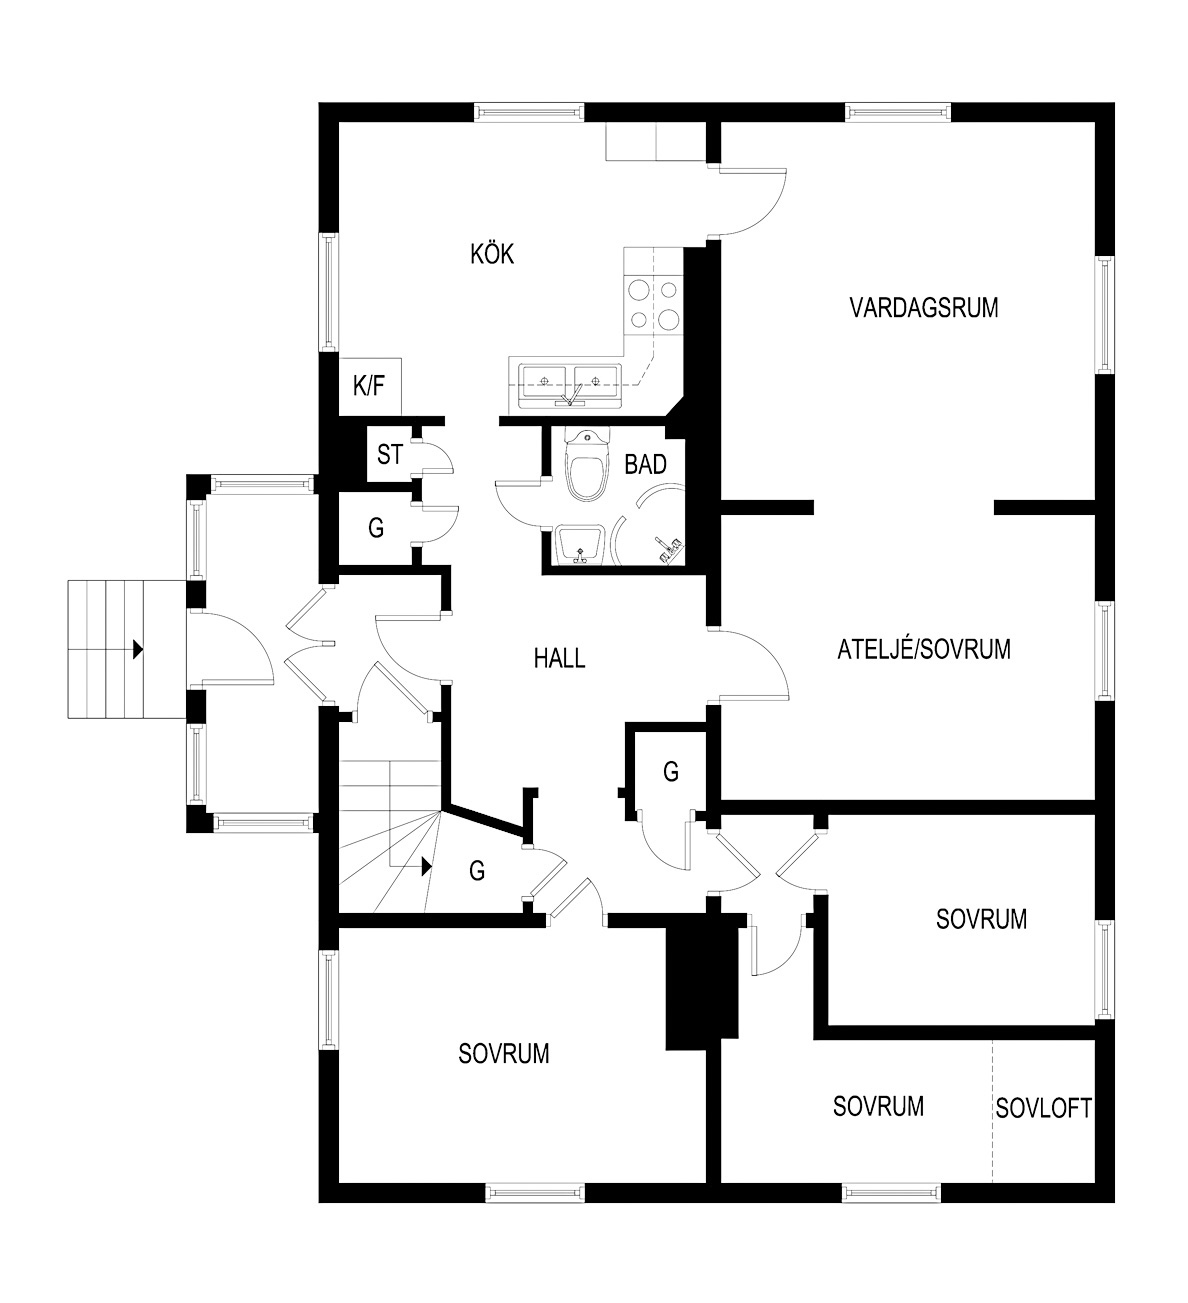 101 sqm floor plan